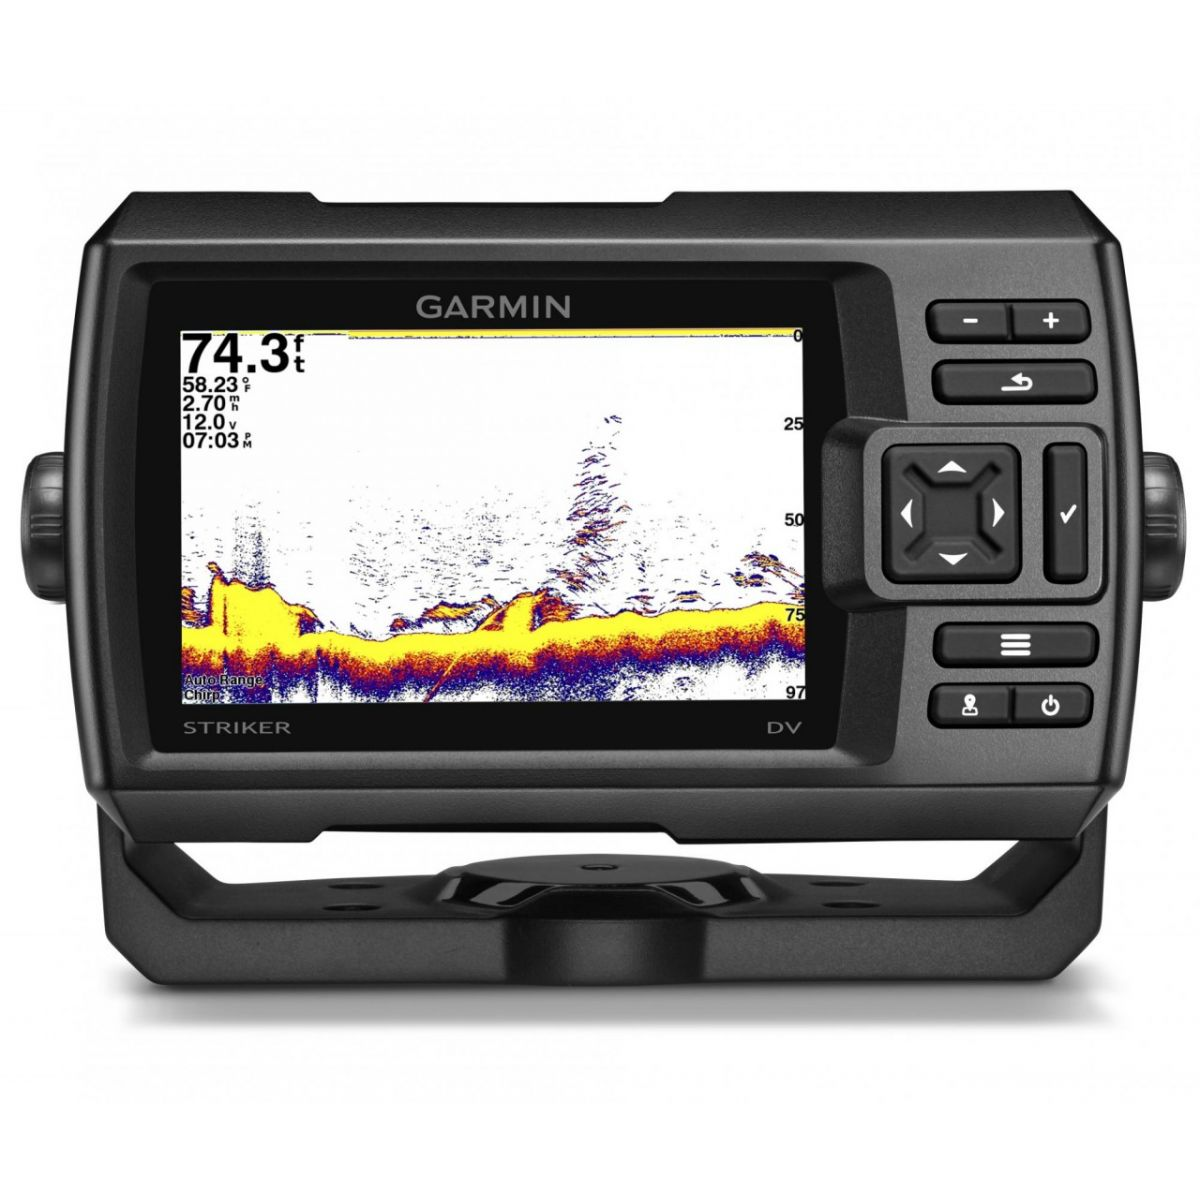 Gps Sonar Garmin Striker 5dv